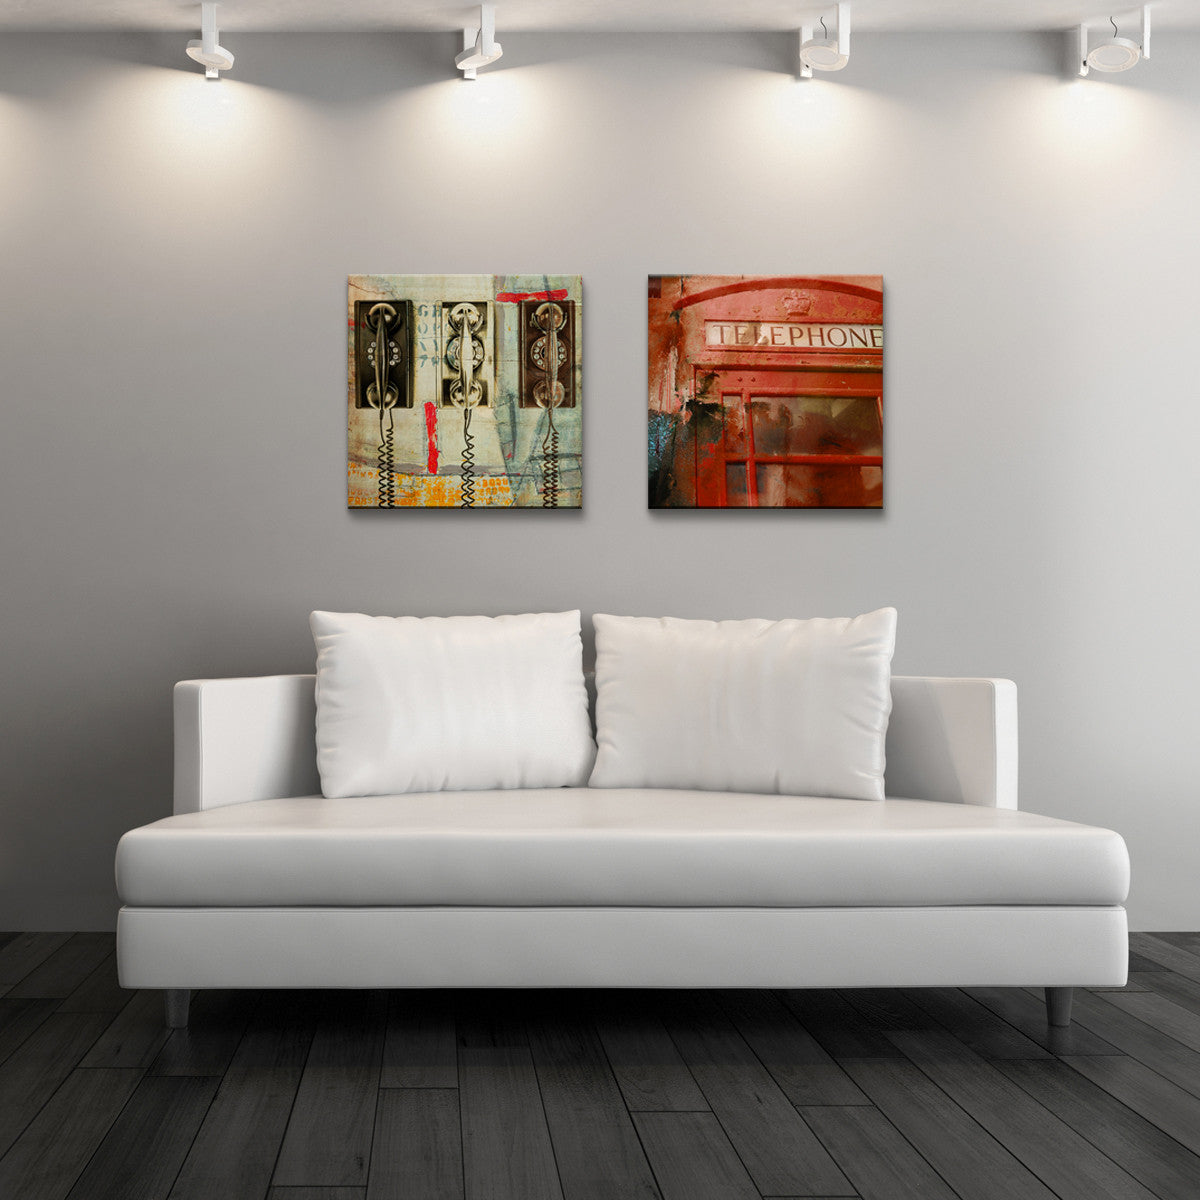 2 Piece Canvas Wall Art people, places, things x' canvas wall art (2-piece) – ready2hangart™